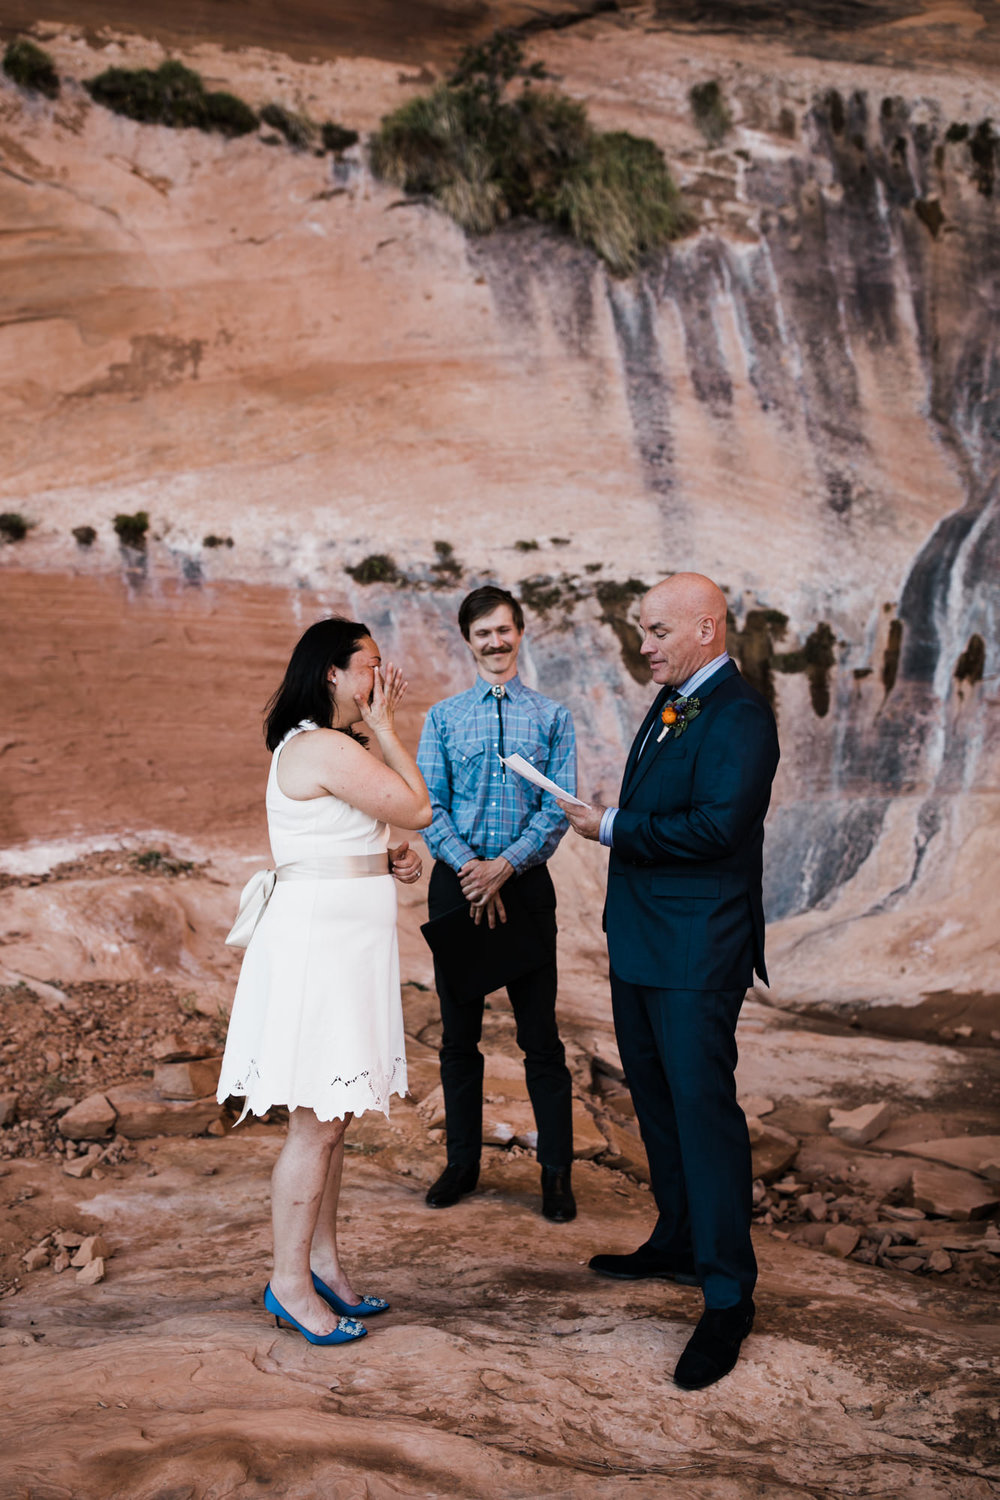 hiking elopement in moab, utah | destination adventure wedding photographers | the hearnes adventure photography | www.thehearnes.com